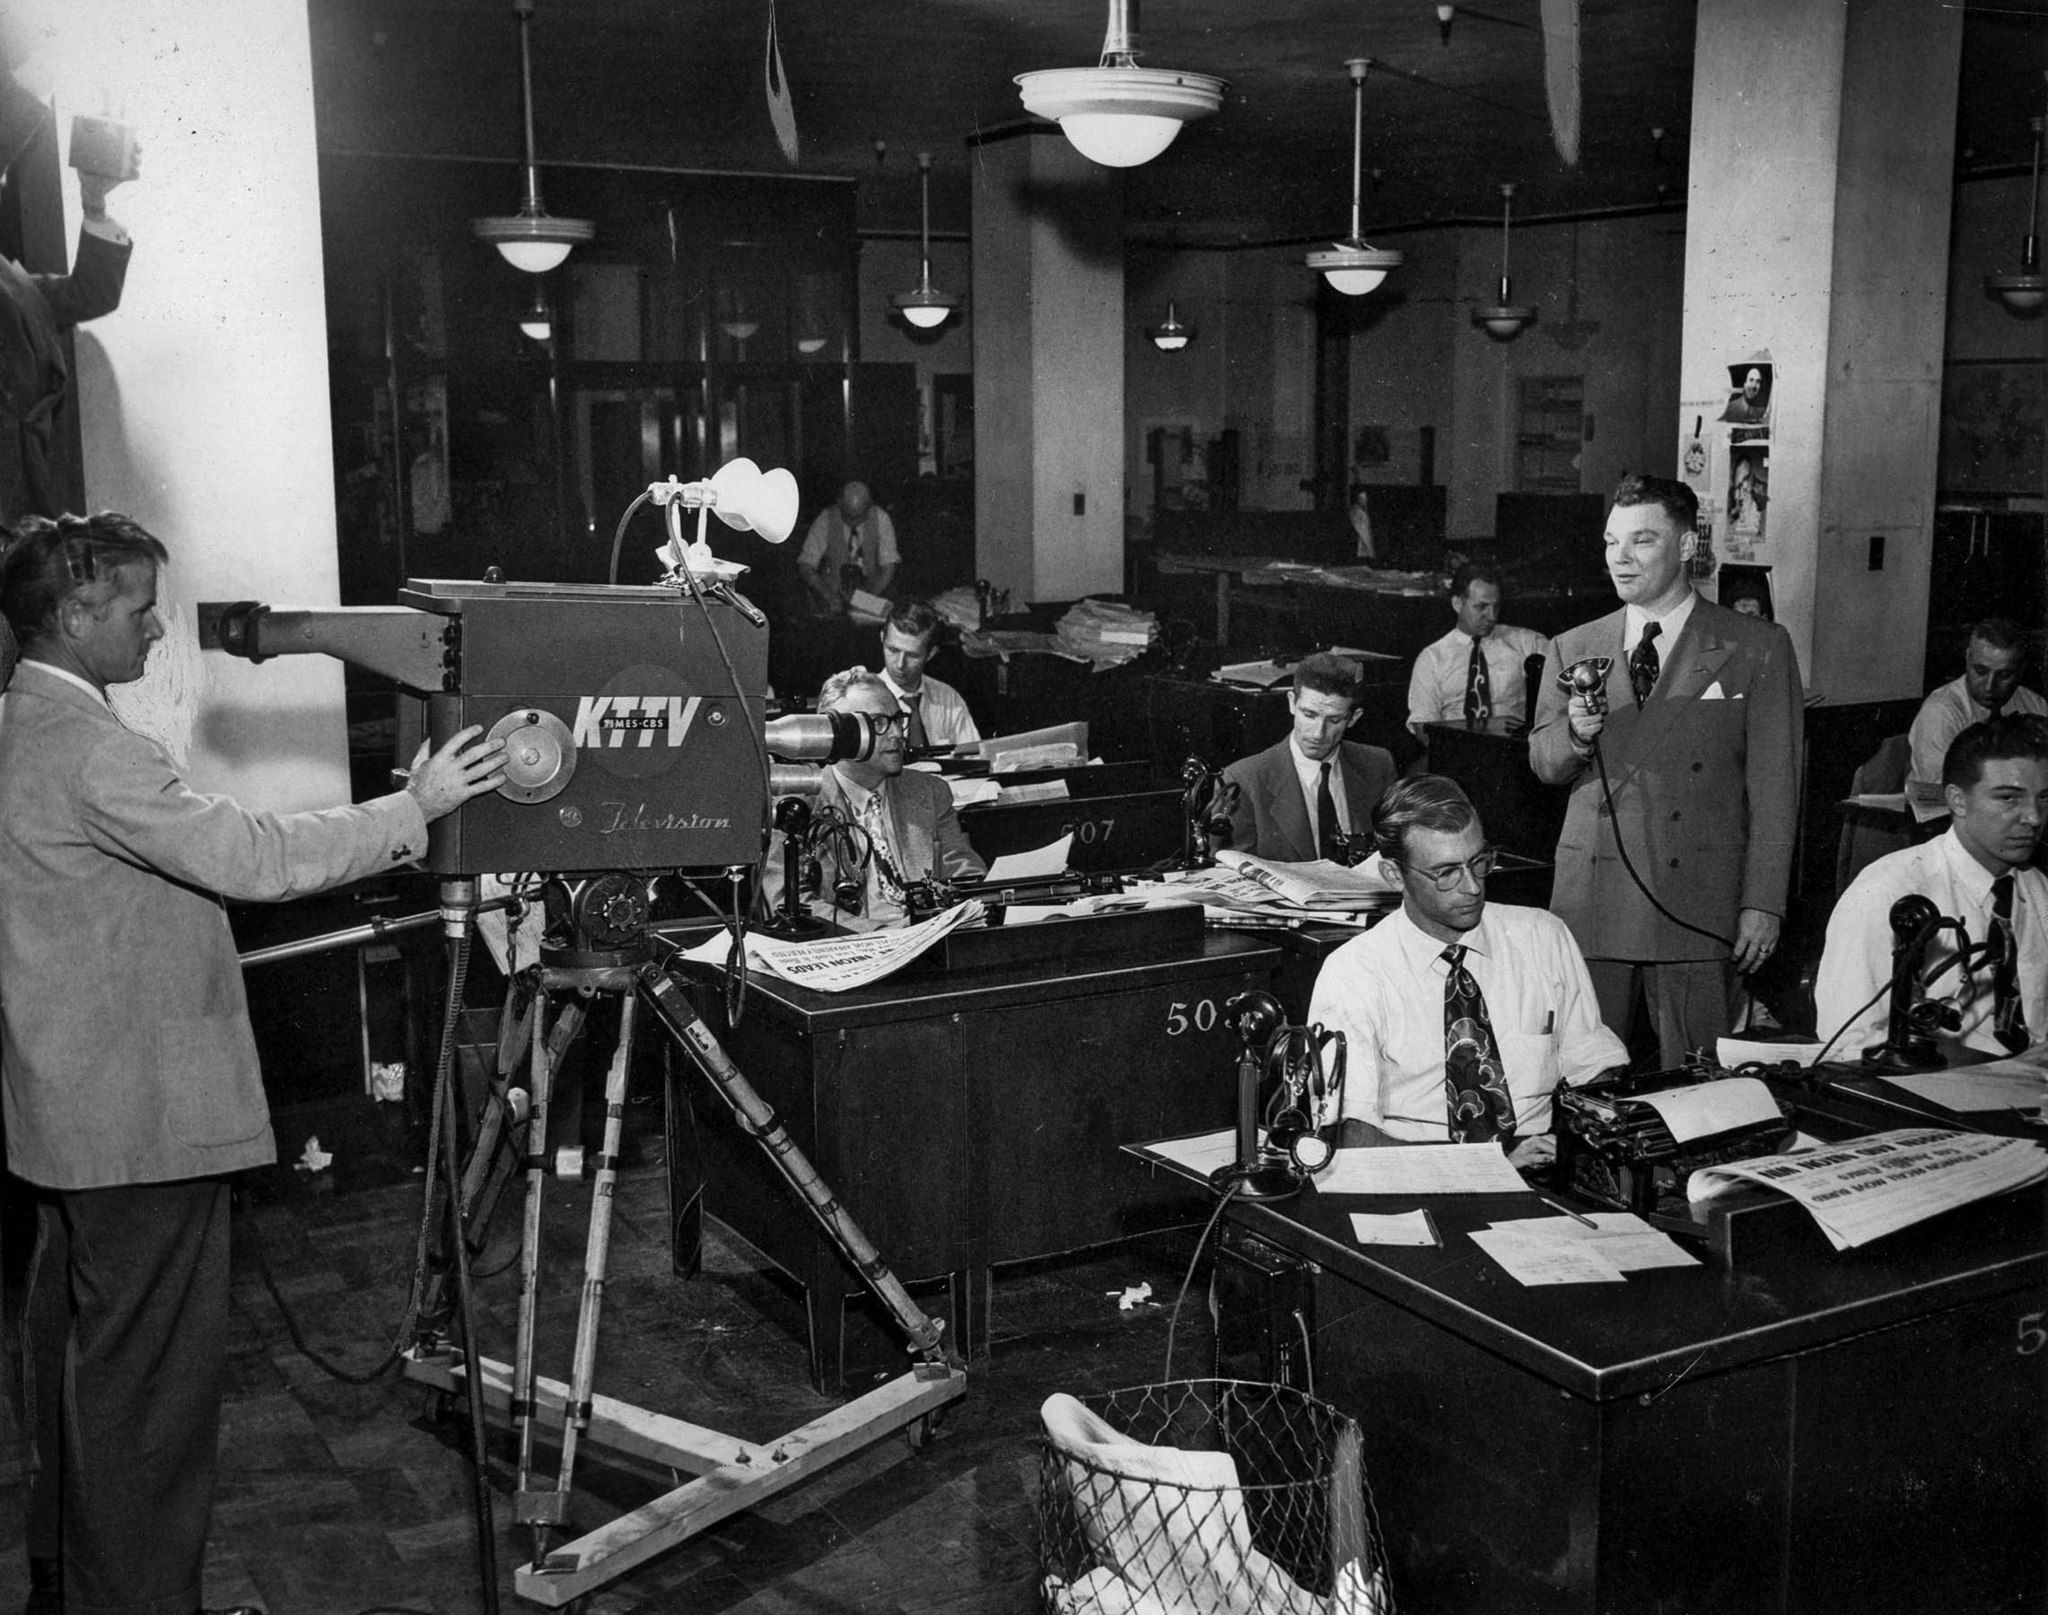 Nov. 7, 1950: In the Los Angeles Times City Room, reporter Bob Hartmann comments on the election res